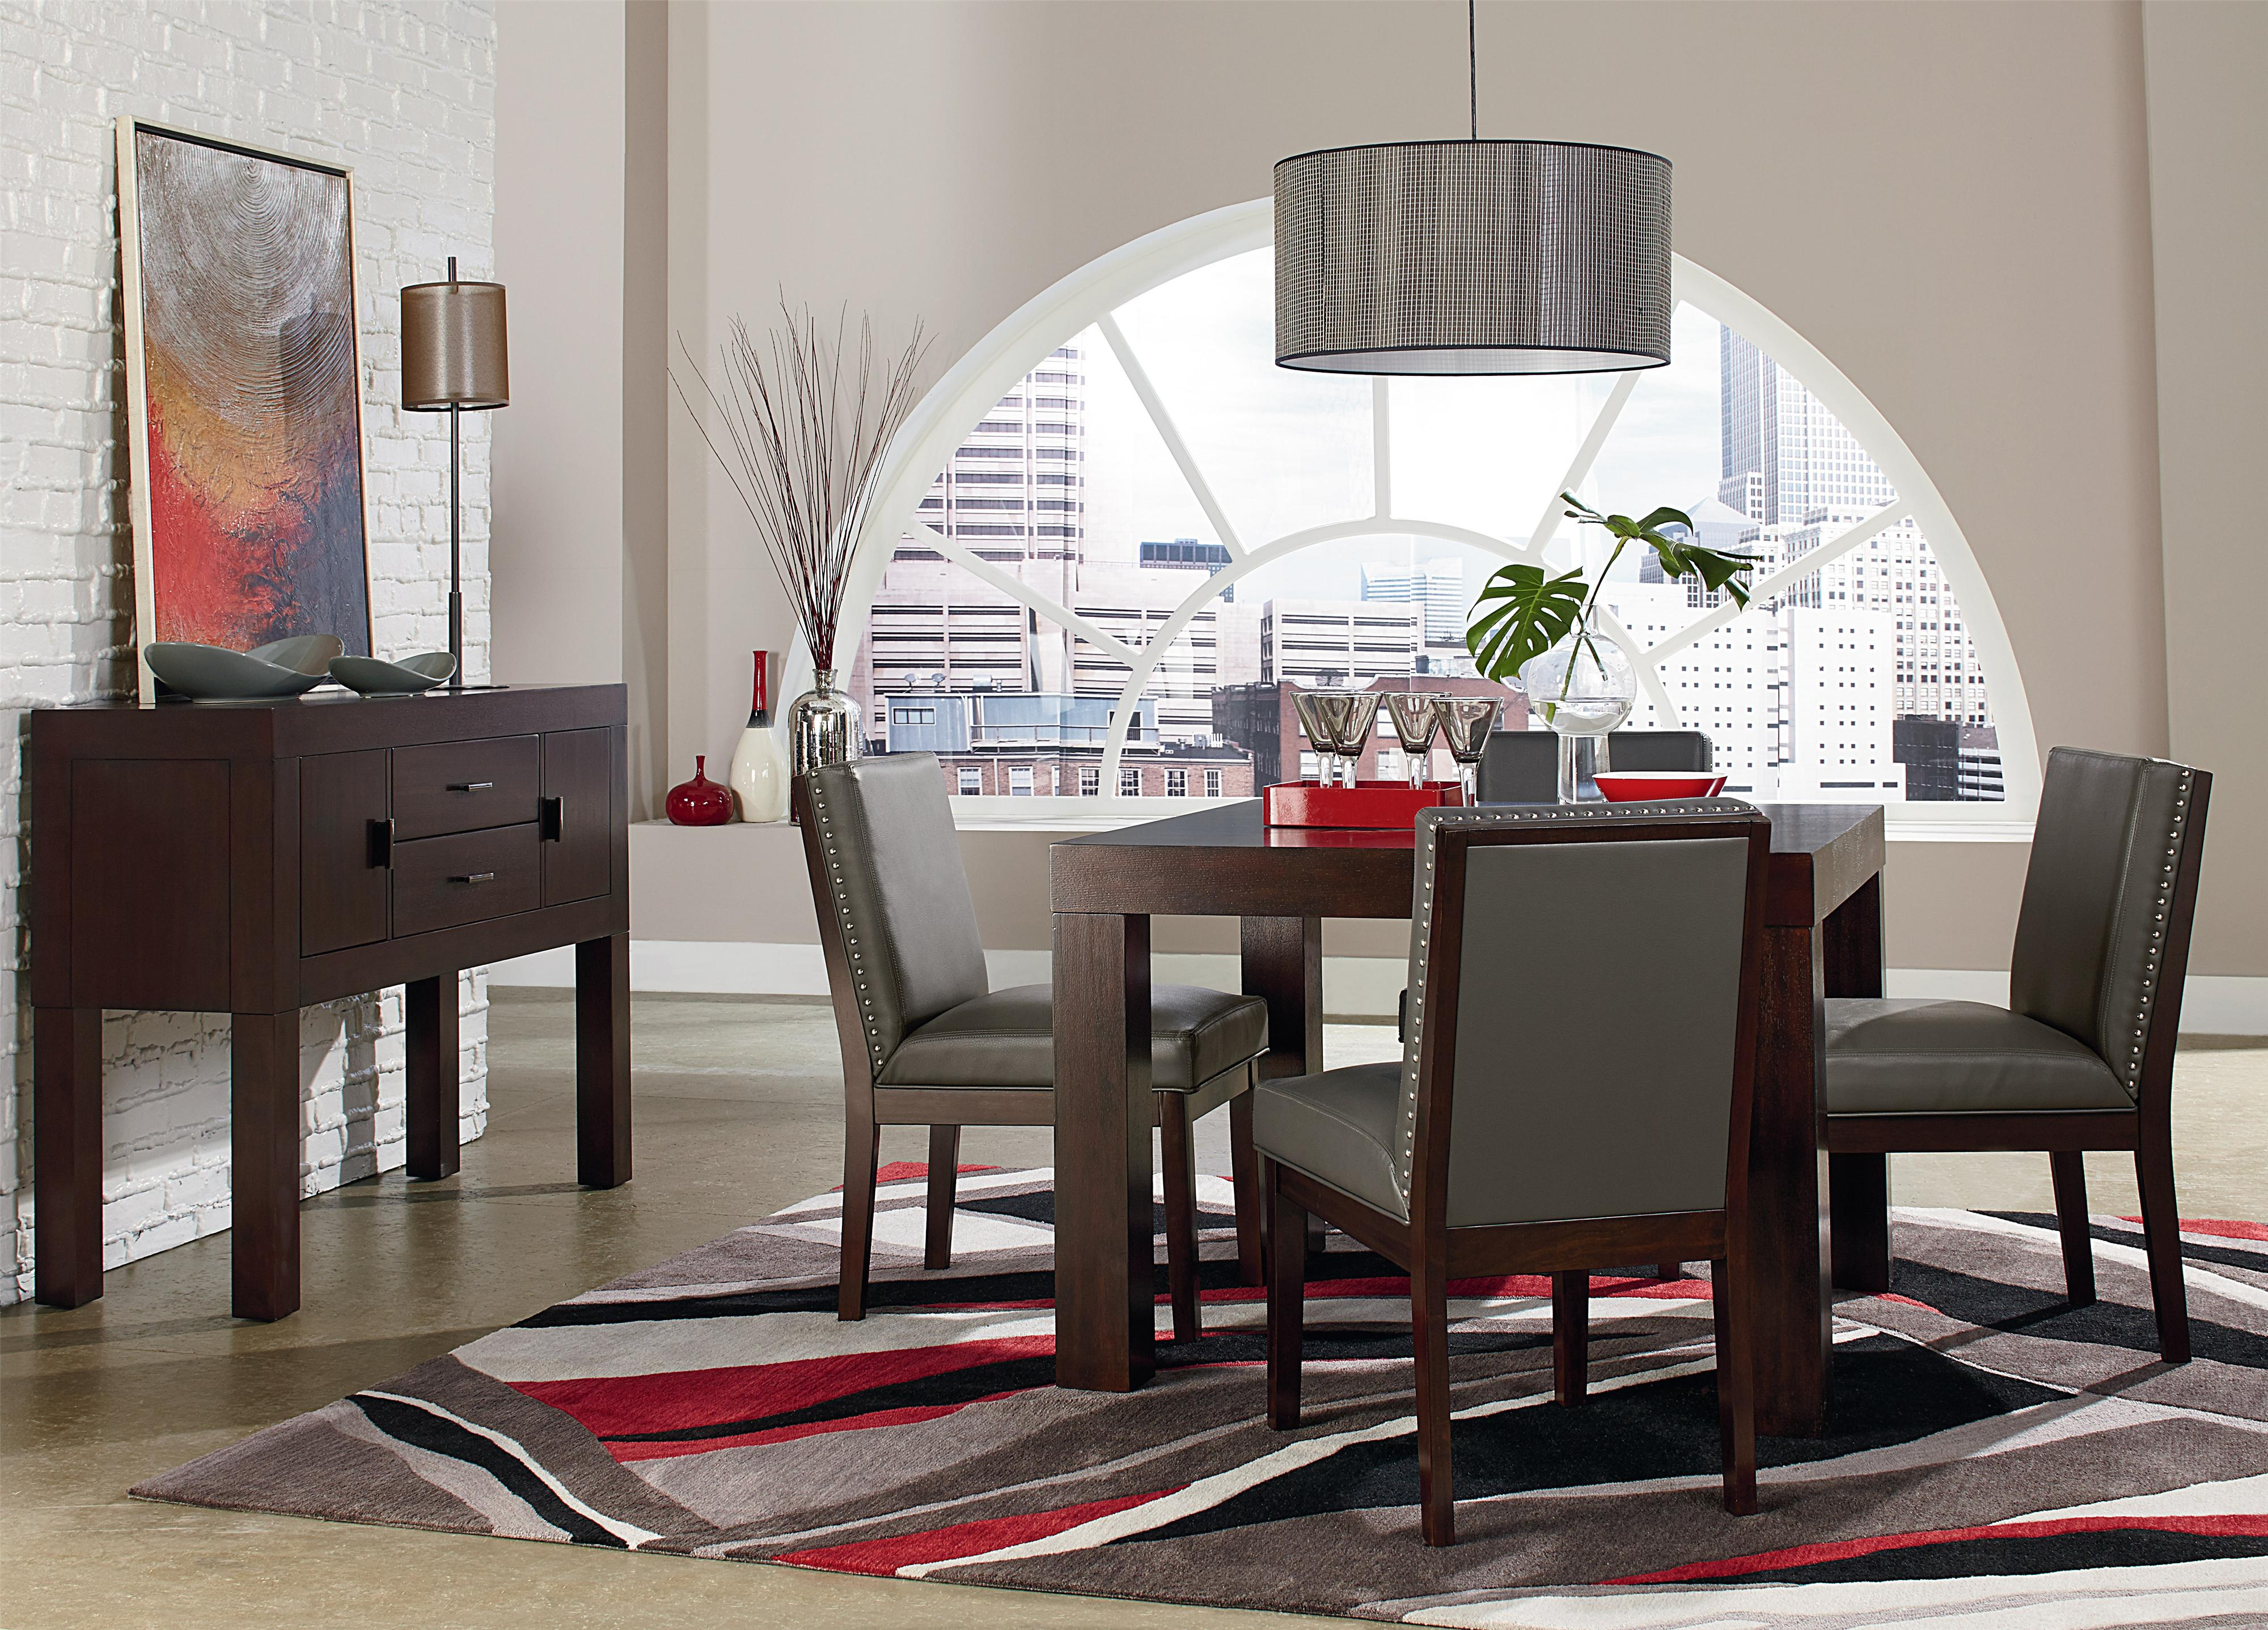 Standard Furniture Couture Elegance Dining Room Group - Item Number: 10560 Dining Room Group 2